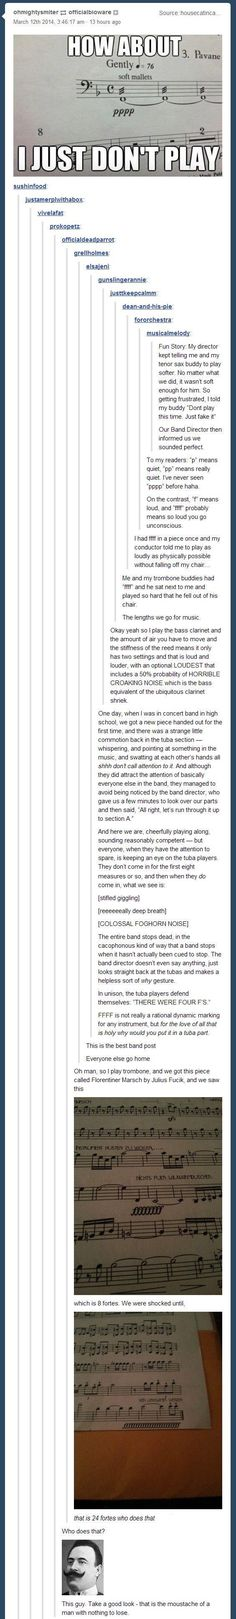 I was never in band, but this is hilarious